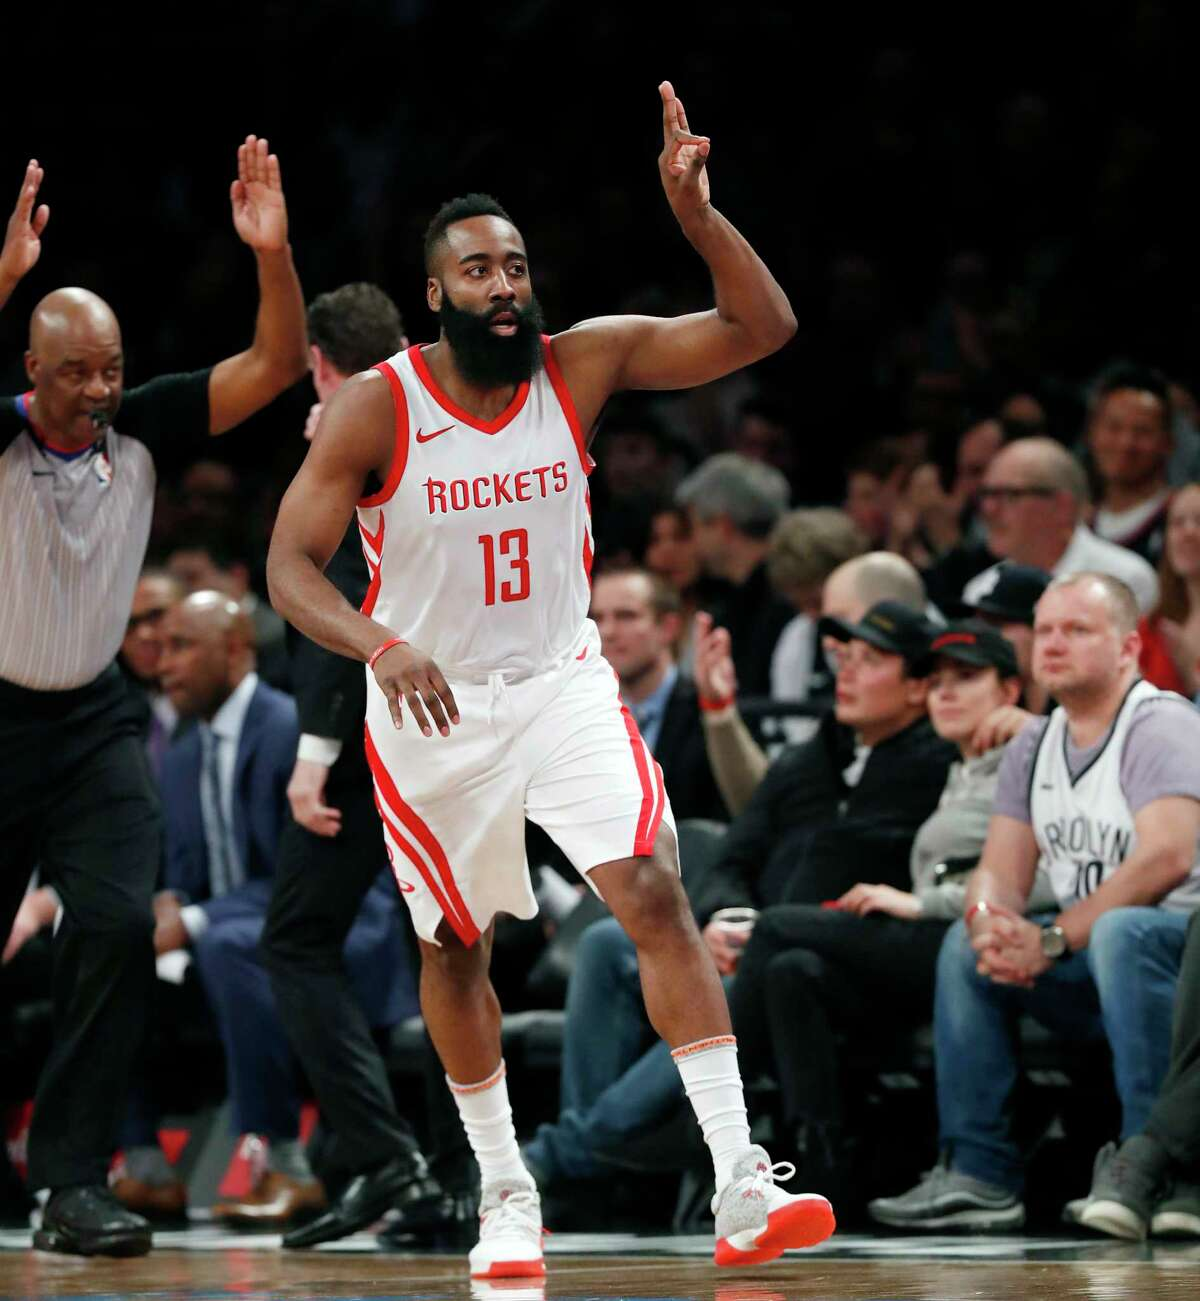 James Harden signals a 3-pointer, one of four the Rockets star hit Tuesday on his way to 36 points.